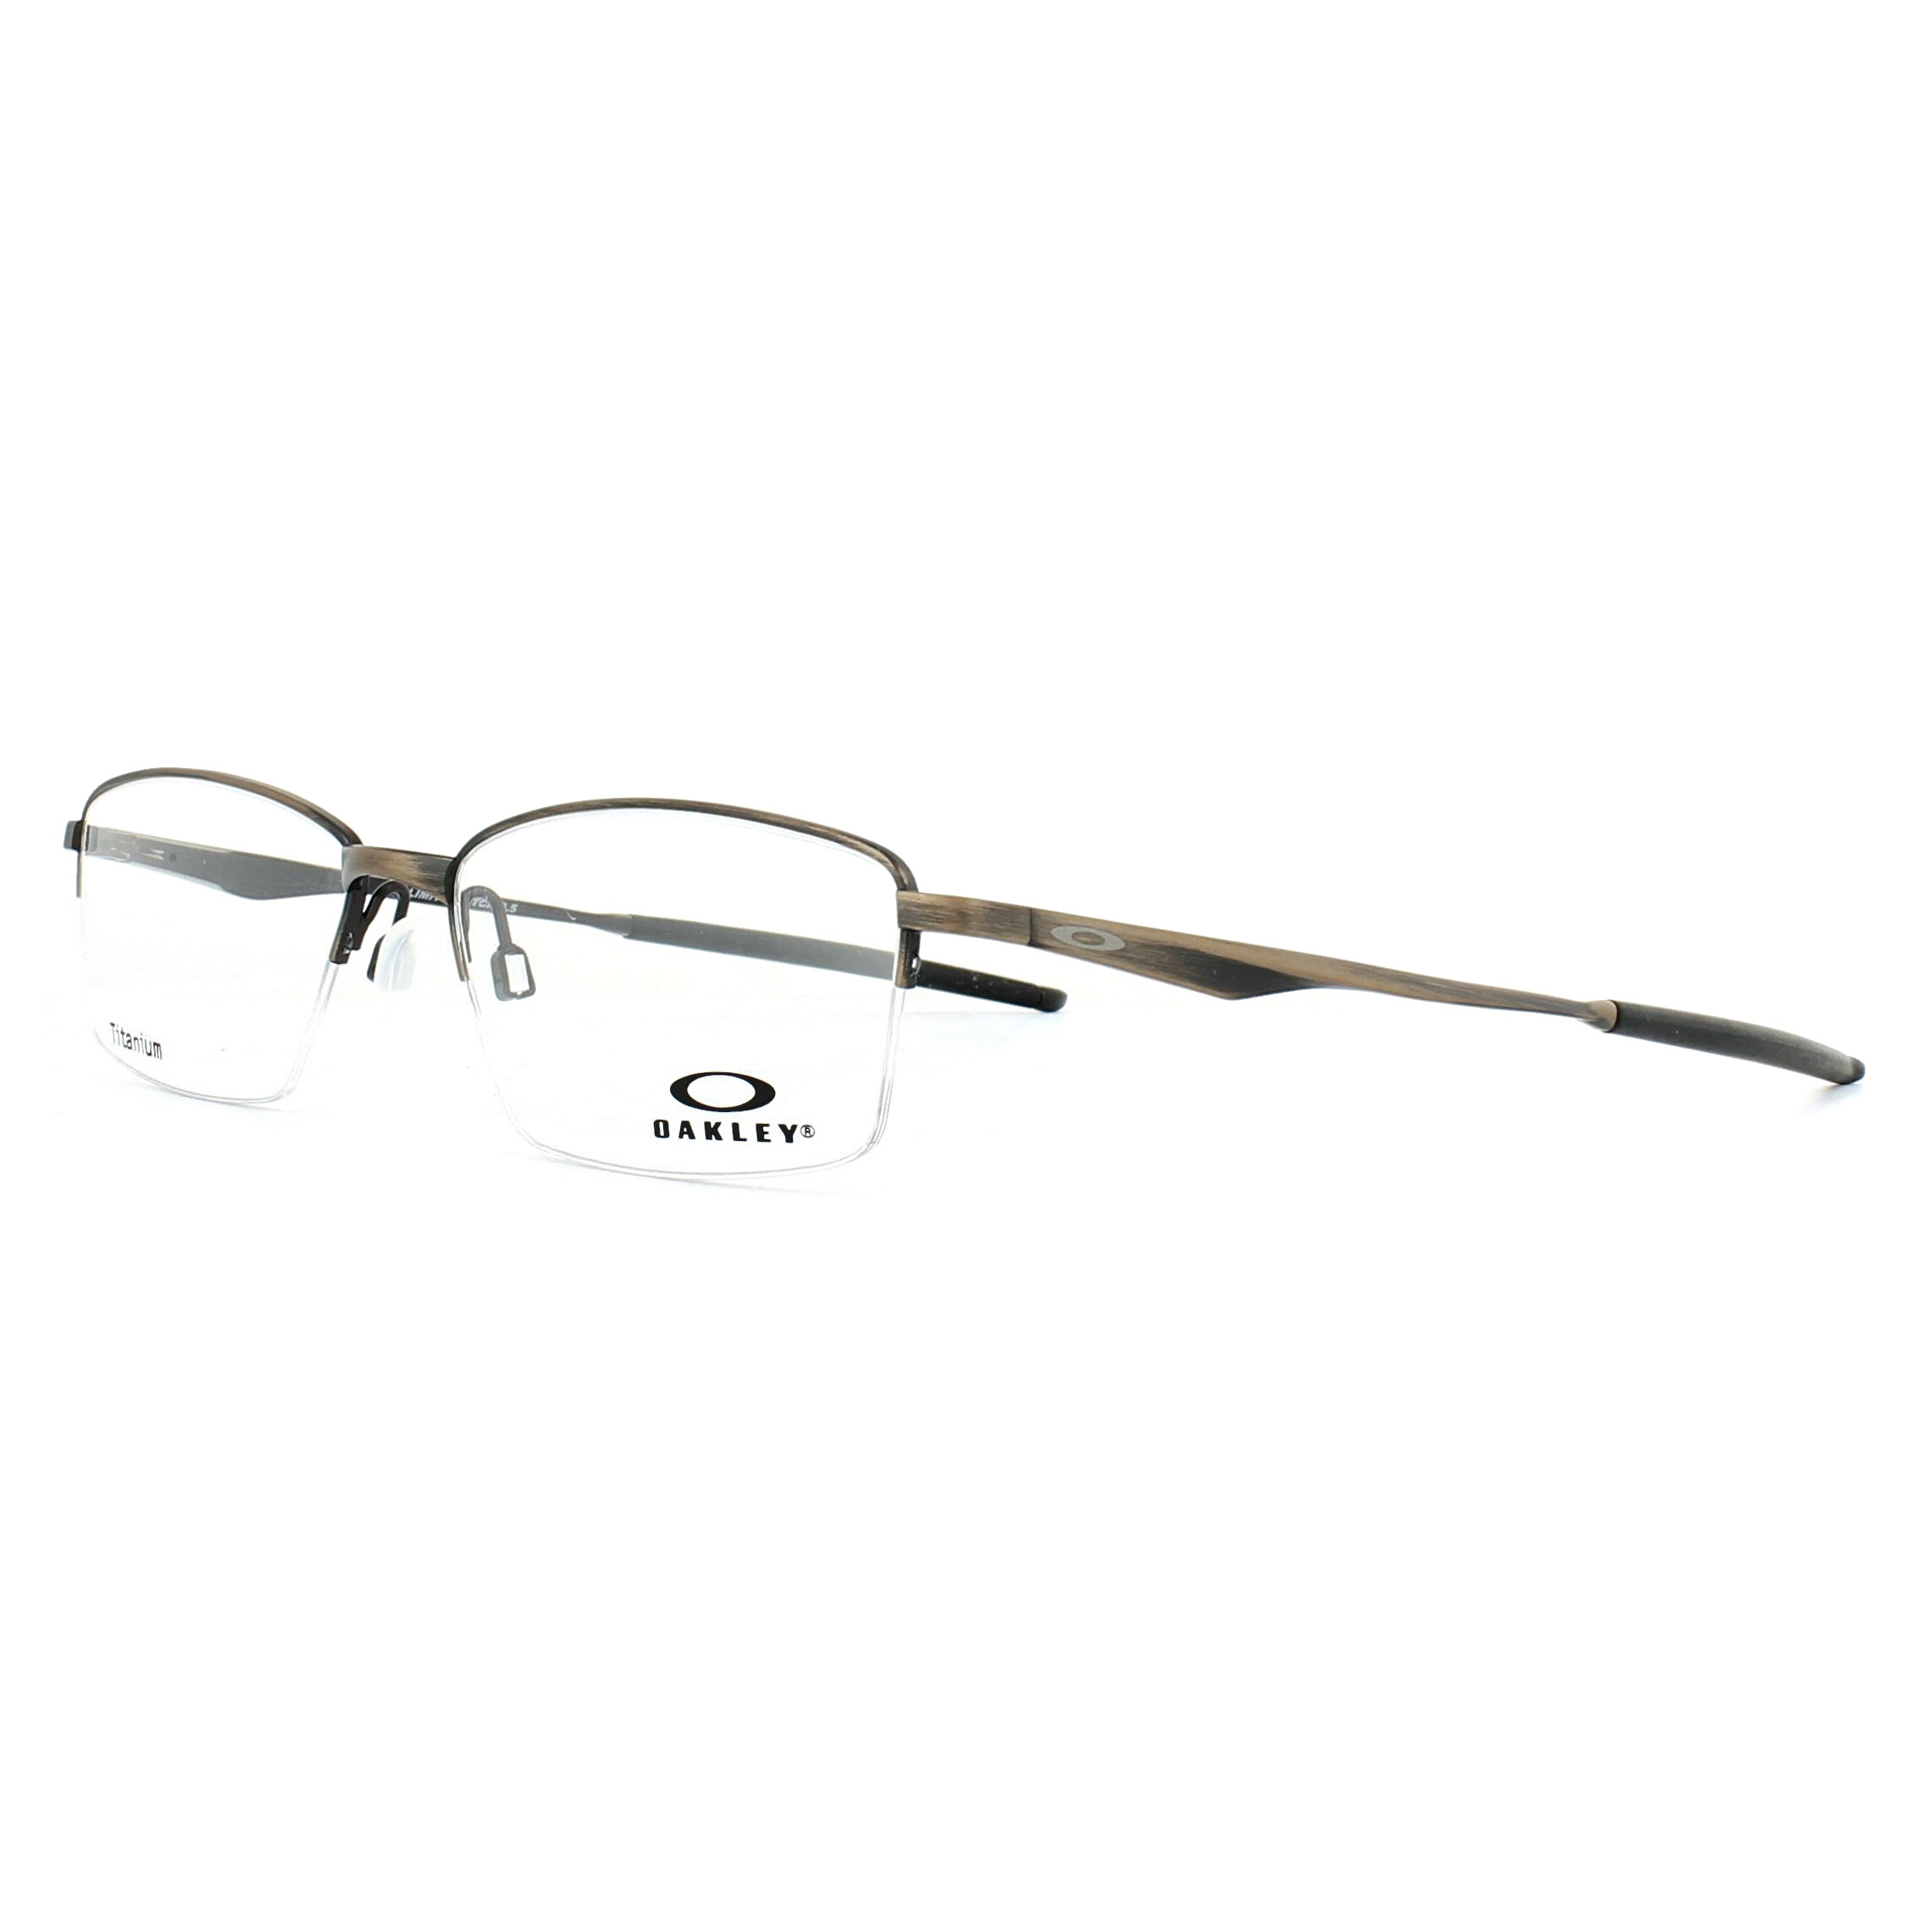 98b34ce3586 ... get sentinel oakley glasses frames limit switch 0.5 ox5119 03 toast  54mm mens 0fea1 49e42